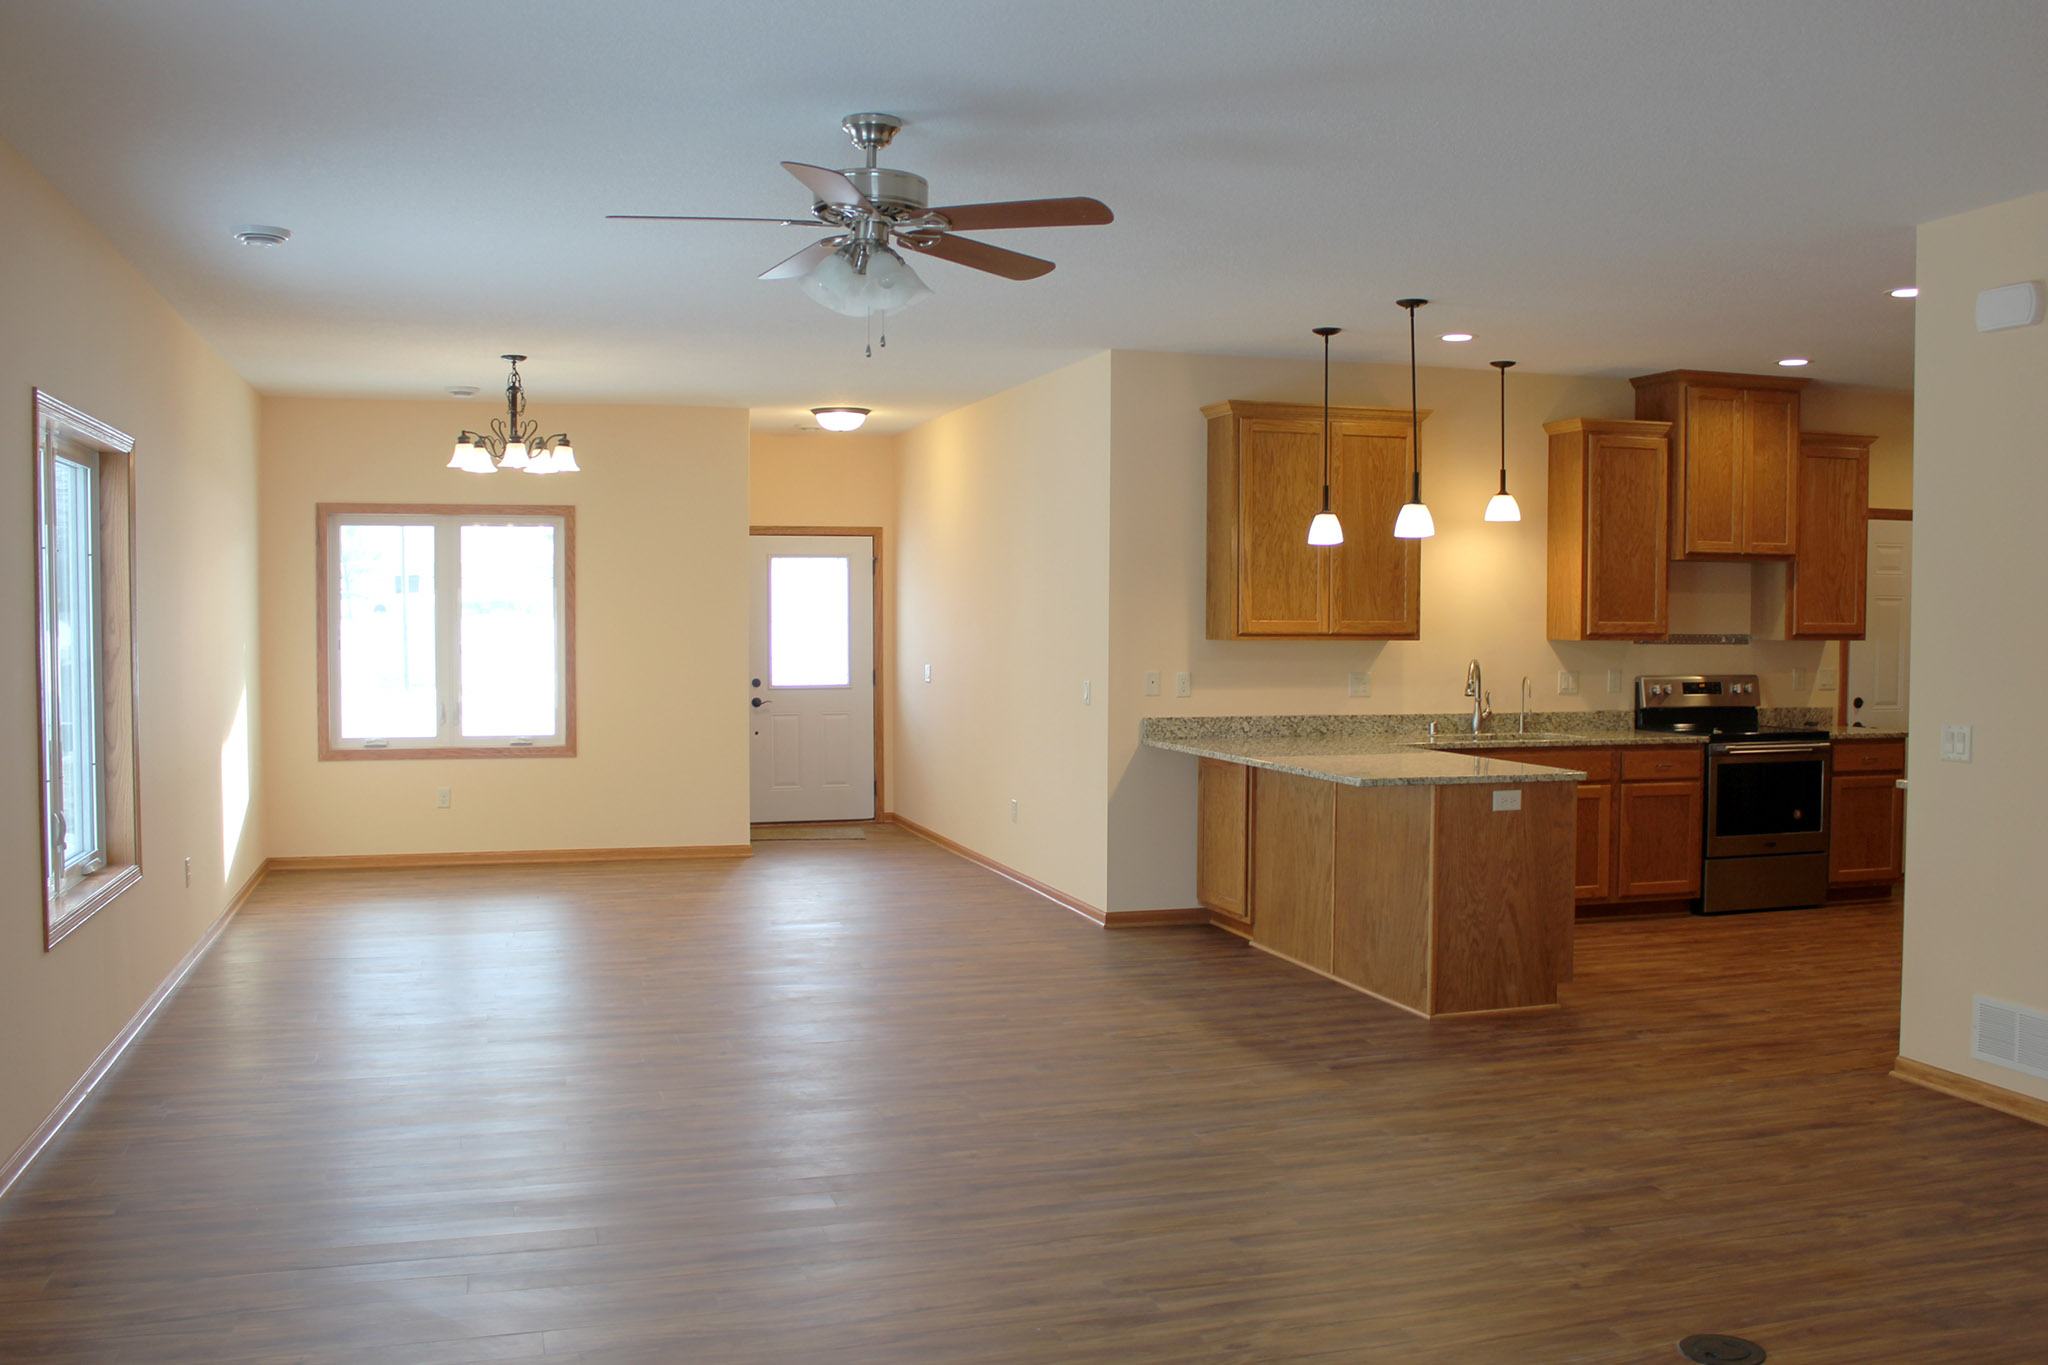 Twin home open floor plan with kitchen peninsula